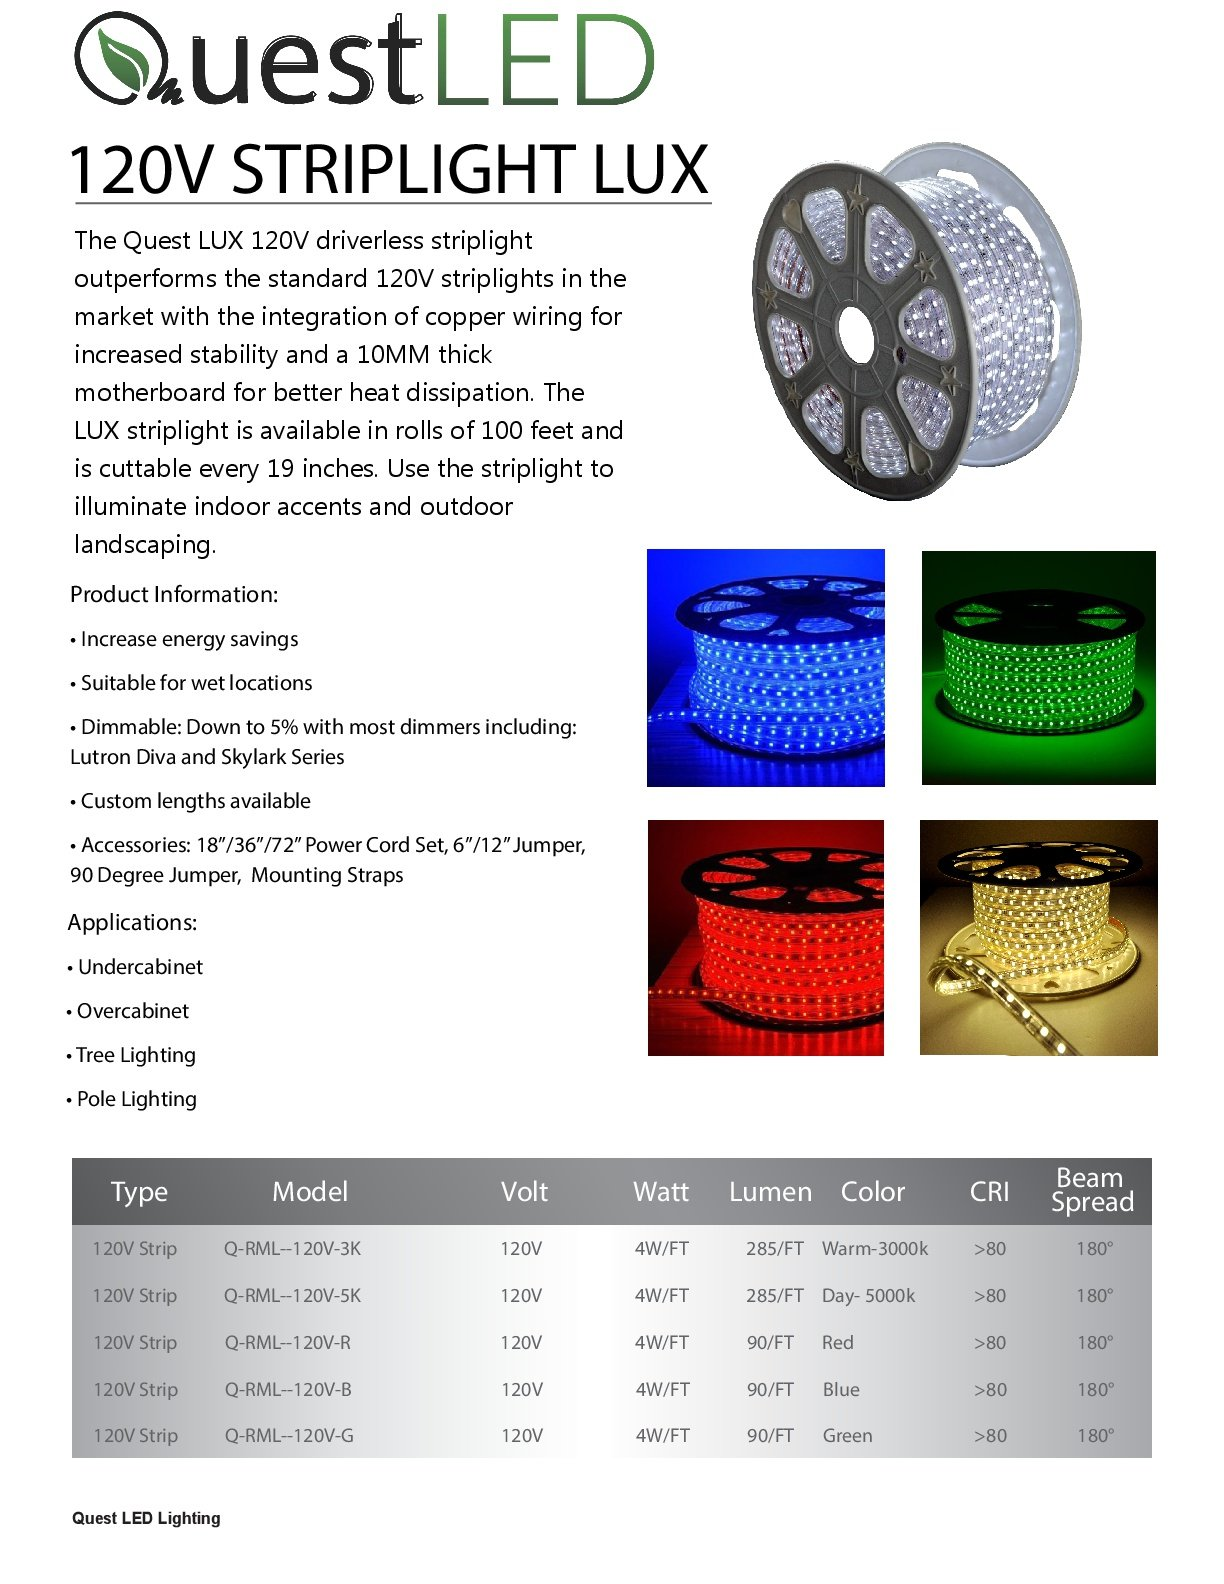 100FT LED Strip Rope Light; Indoor/Outdoor Use; Dimmable; 120V; With Power Cord; Cuttable- Blue Light